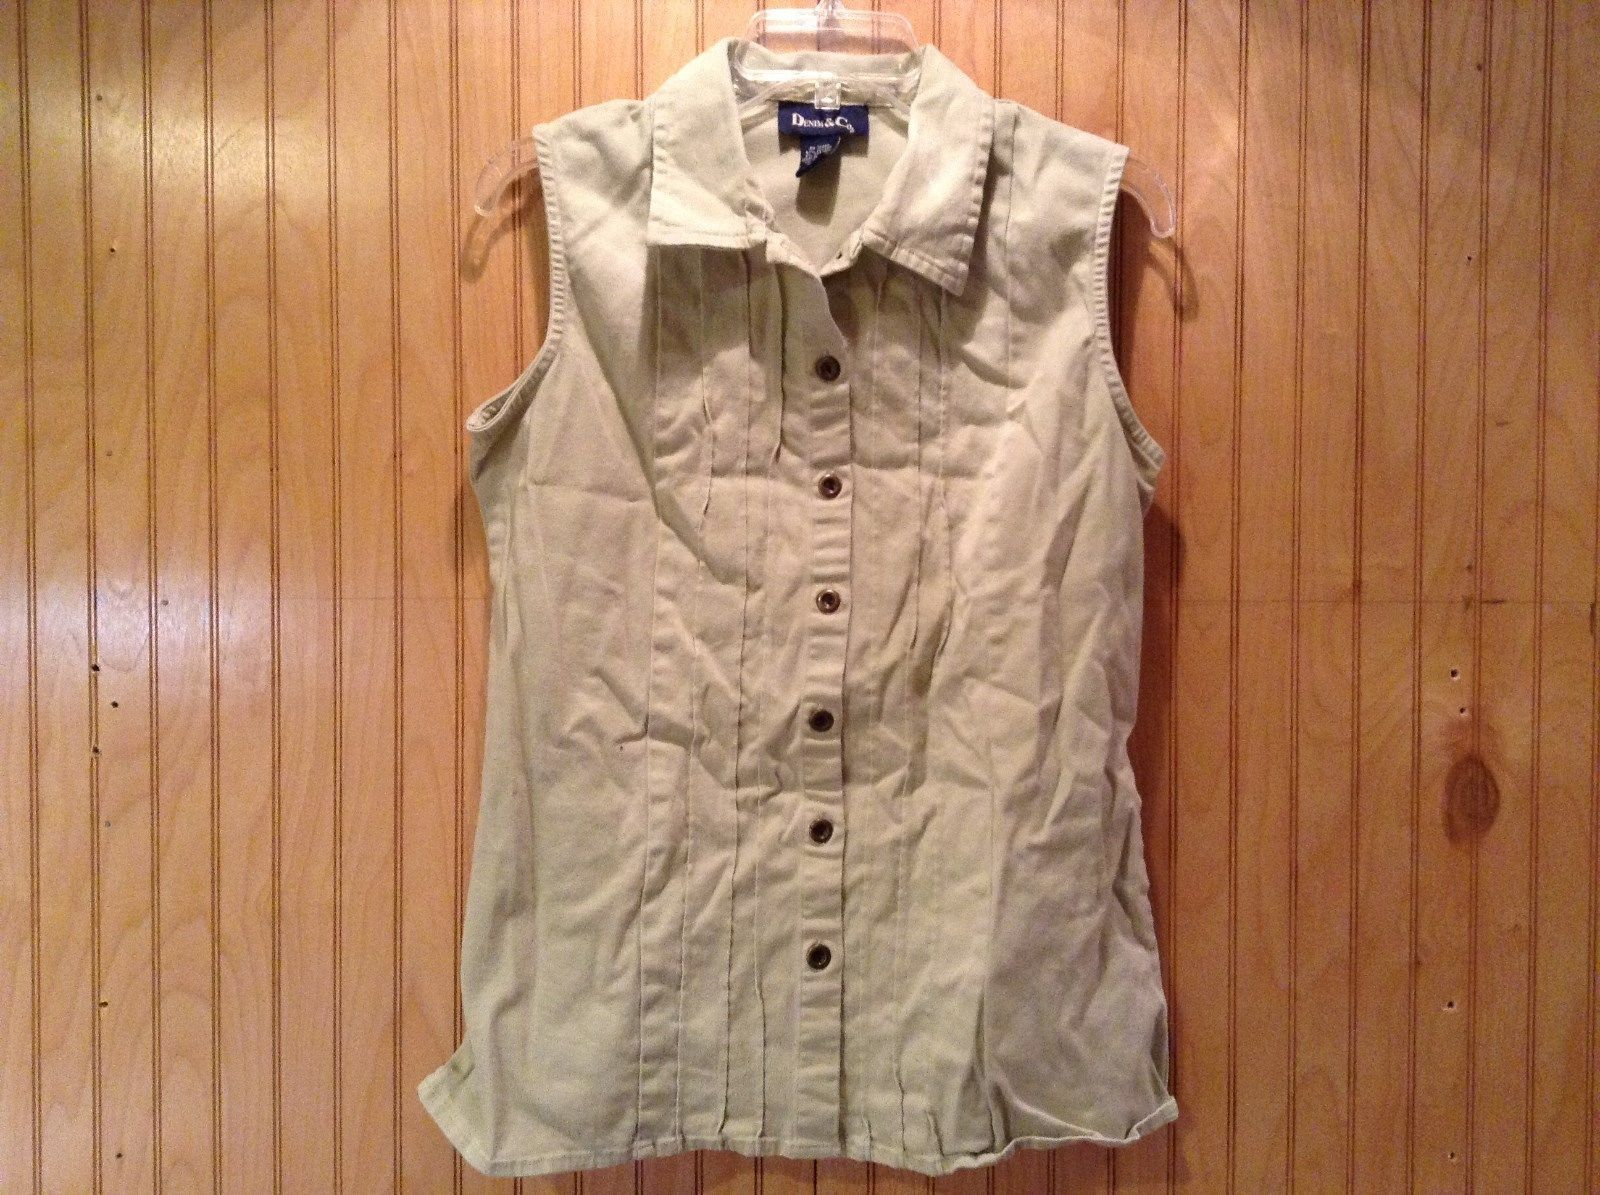 Denim and Company Sleeveless Button Up Light Brown Shirt Size Medium